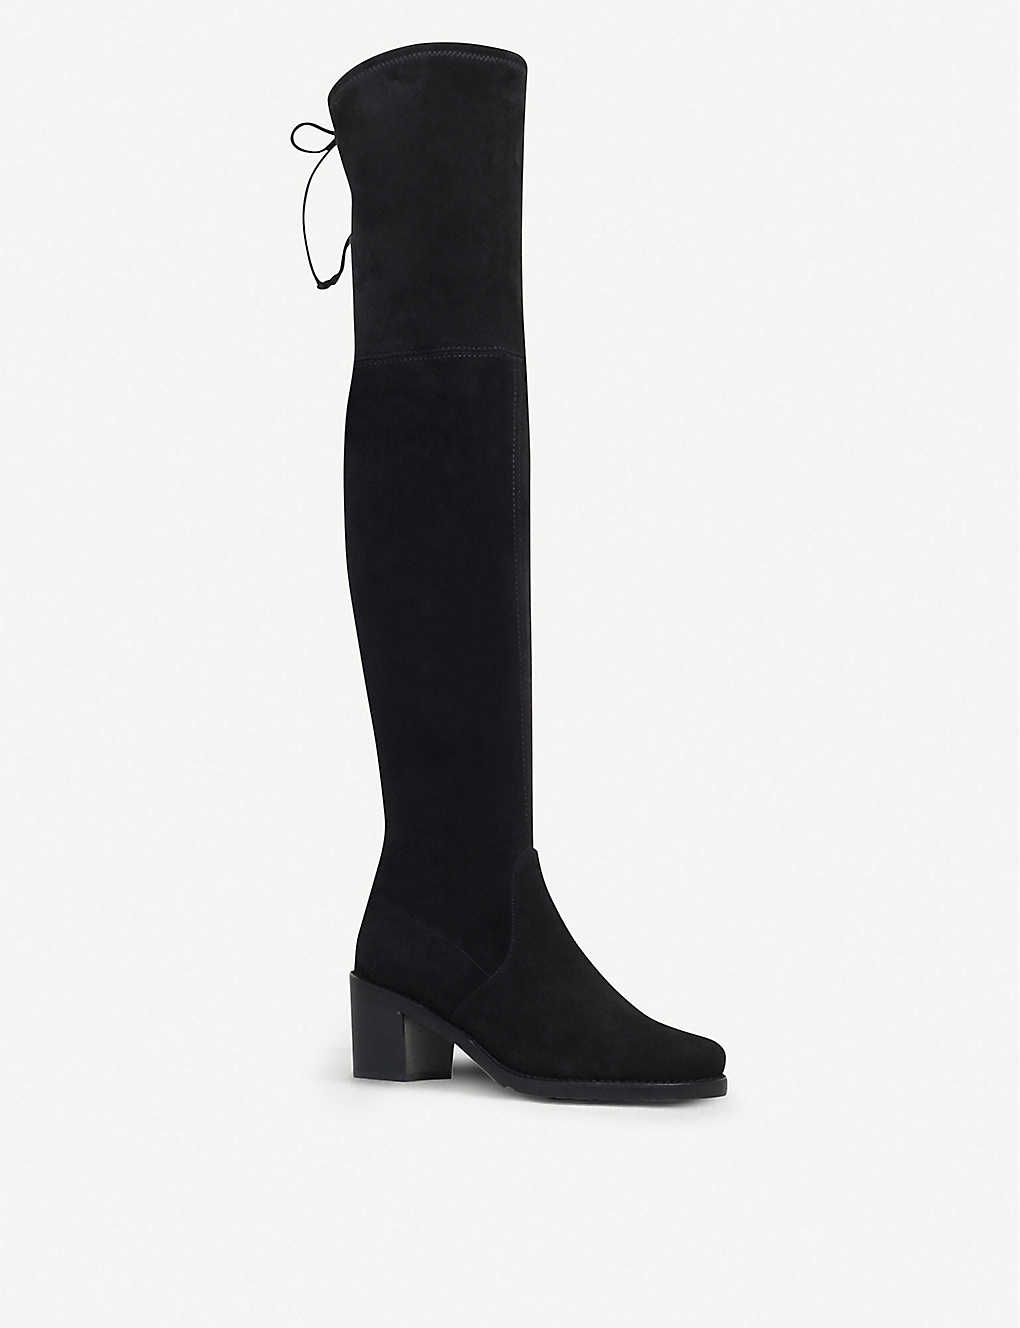 b77a0ea0a6b1 STUART WEITZMAN - Urban suede over-the-knee boots